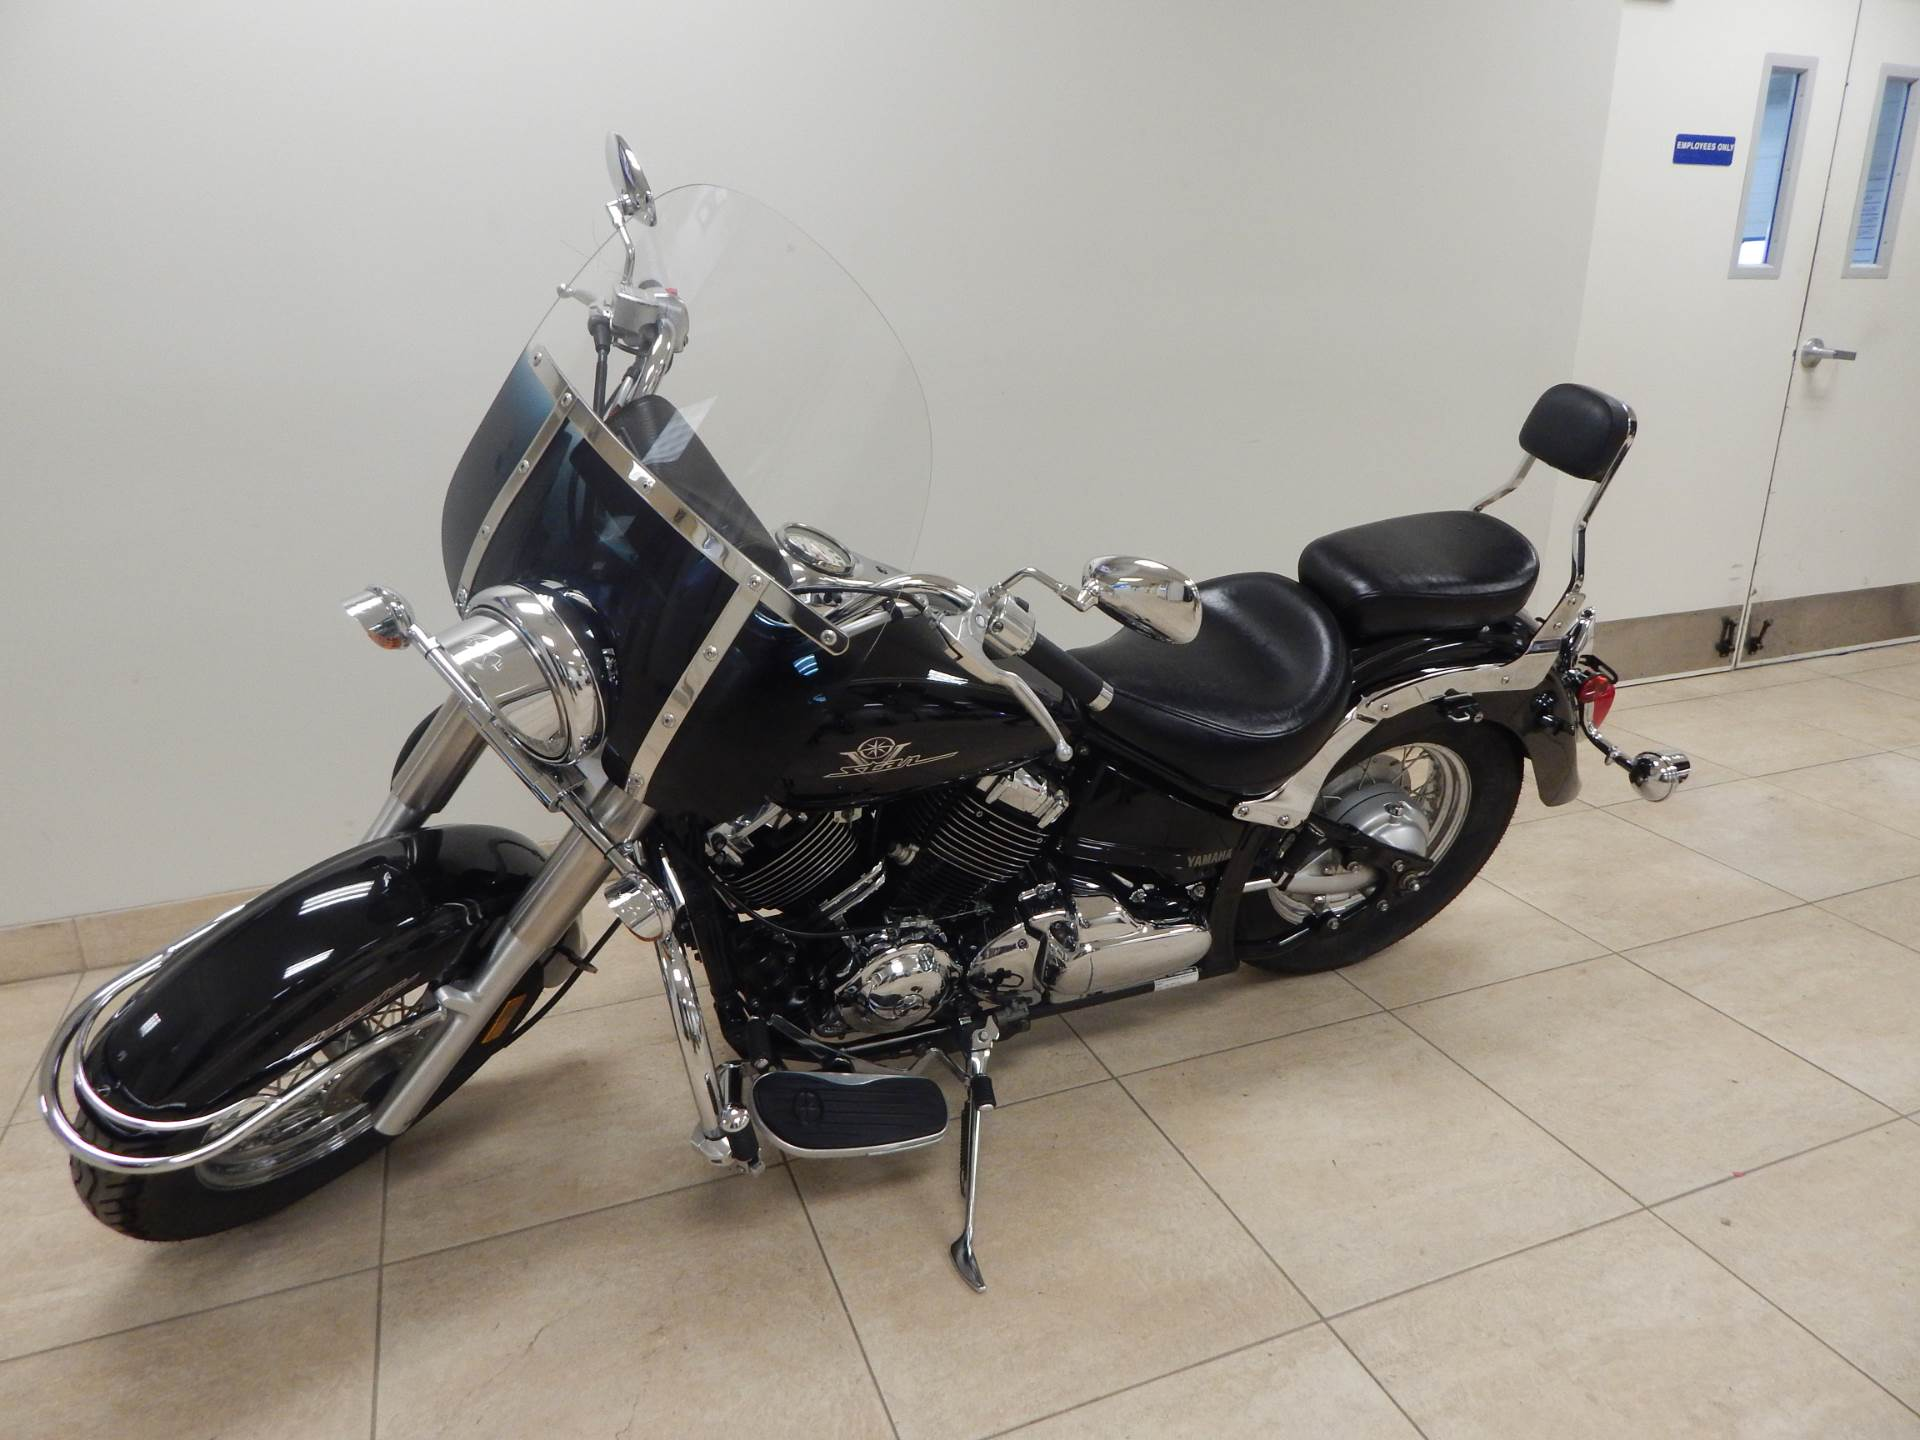 Used 2003 yamaha v star classic motorcycles in concord nh for Nh yamaha dealers